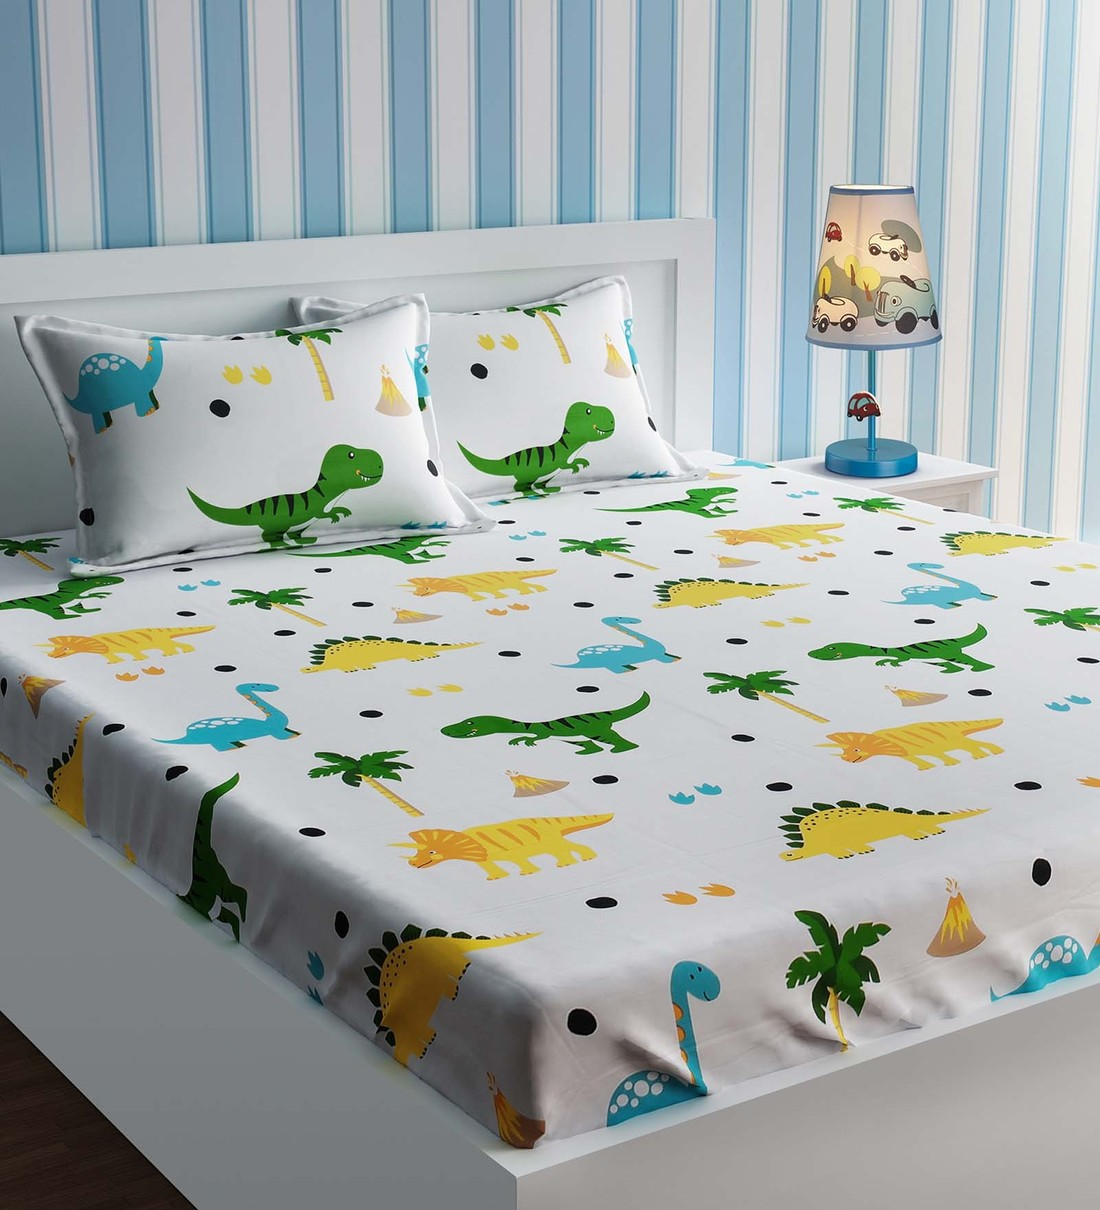 dinosaur single size bedsheet with 2 pillow cover in multicolour